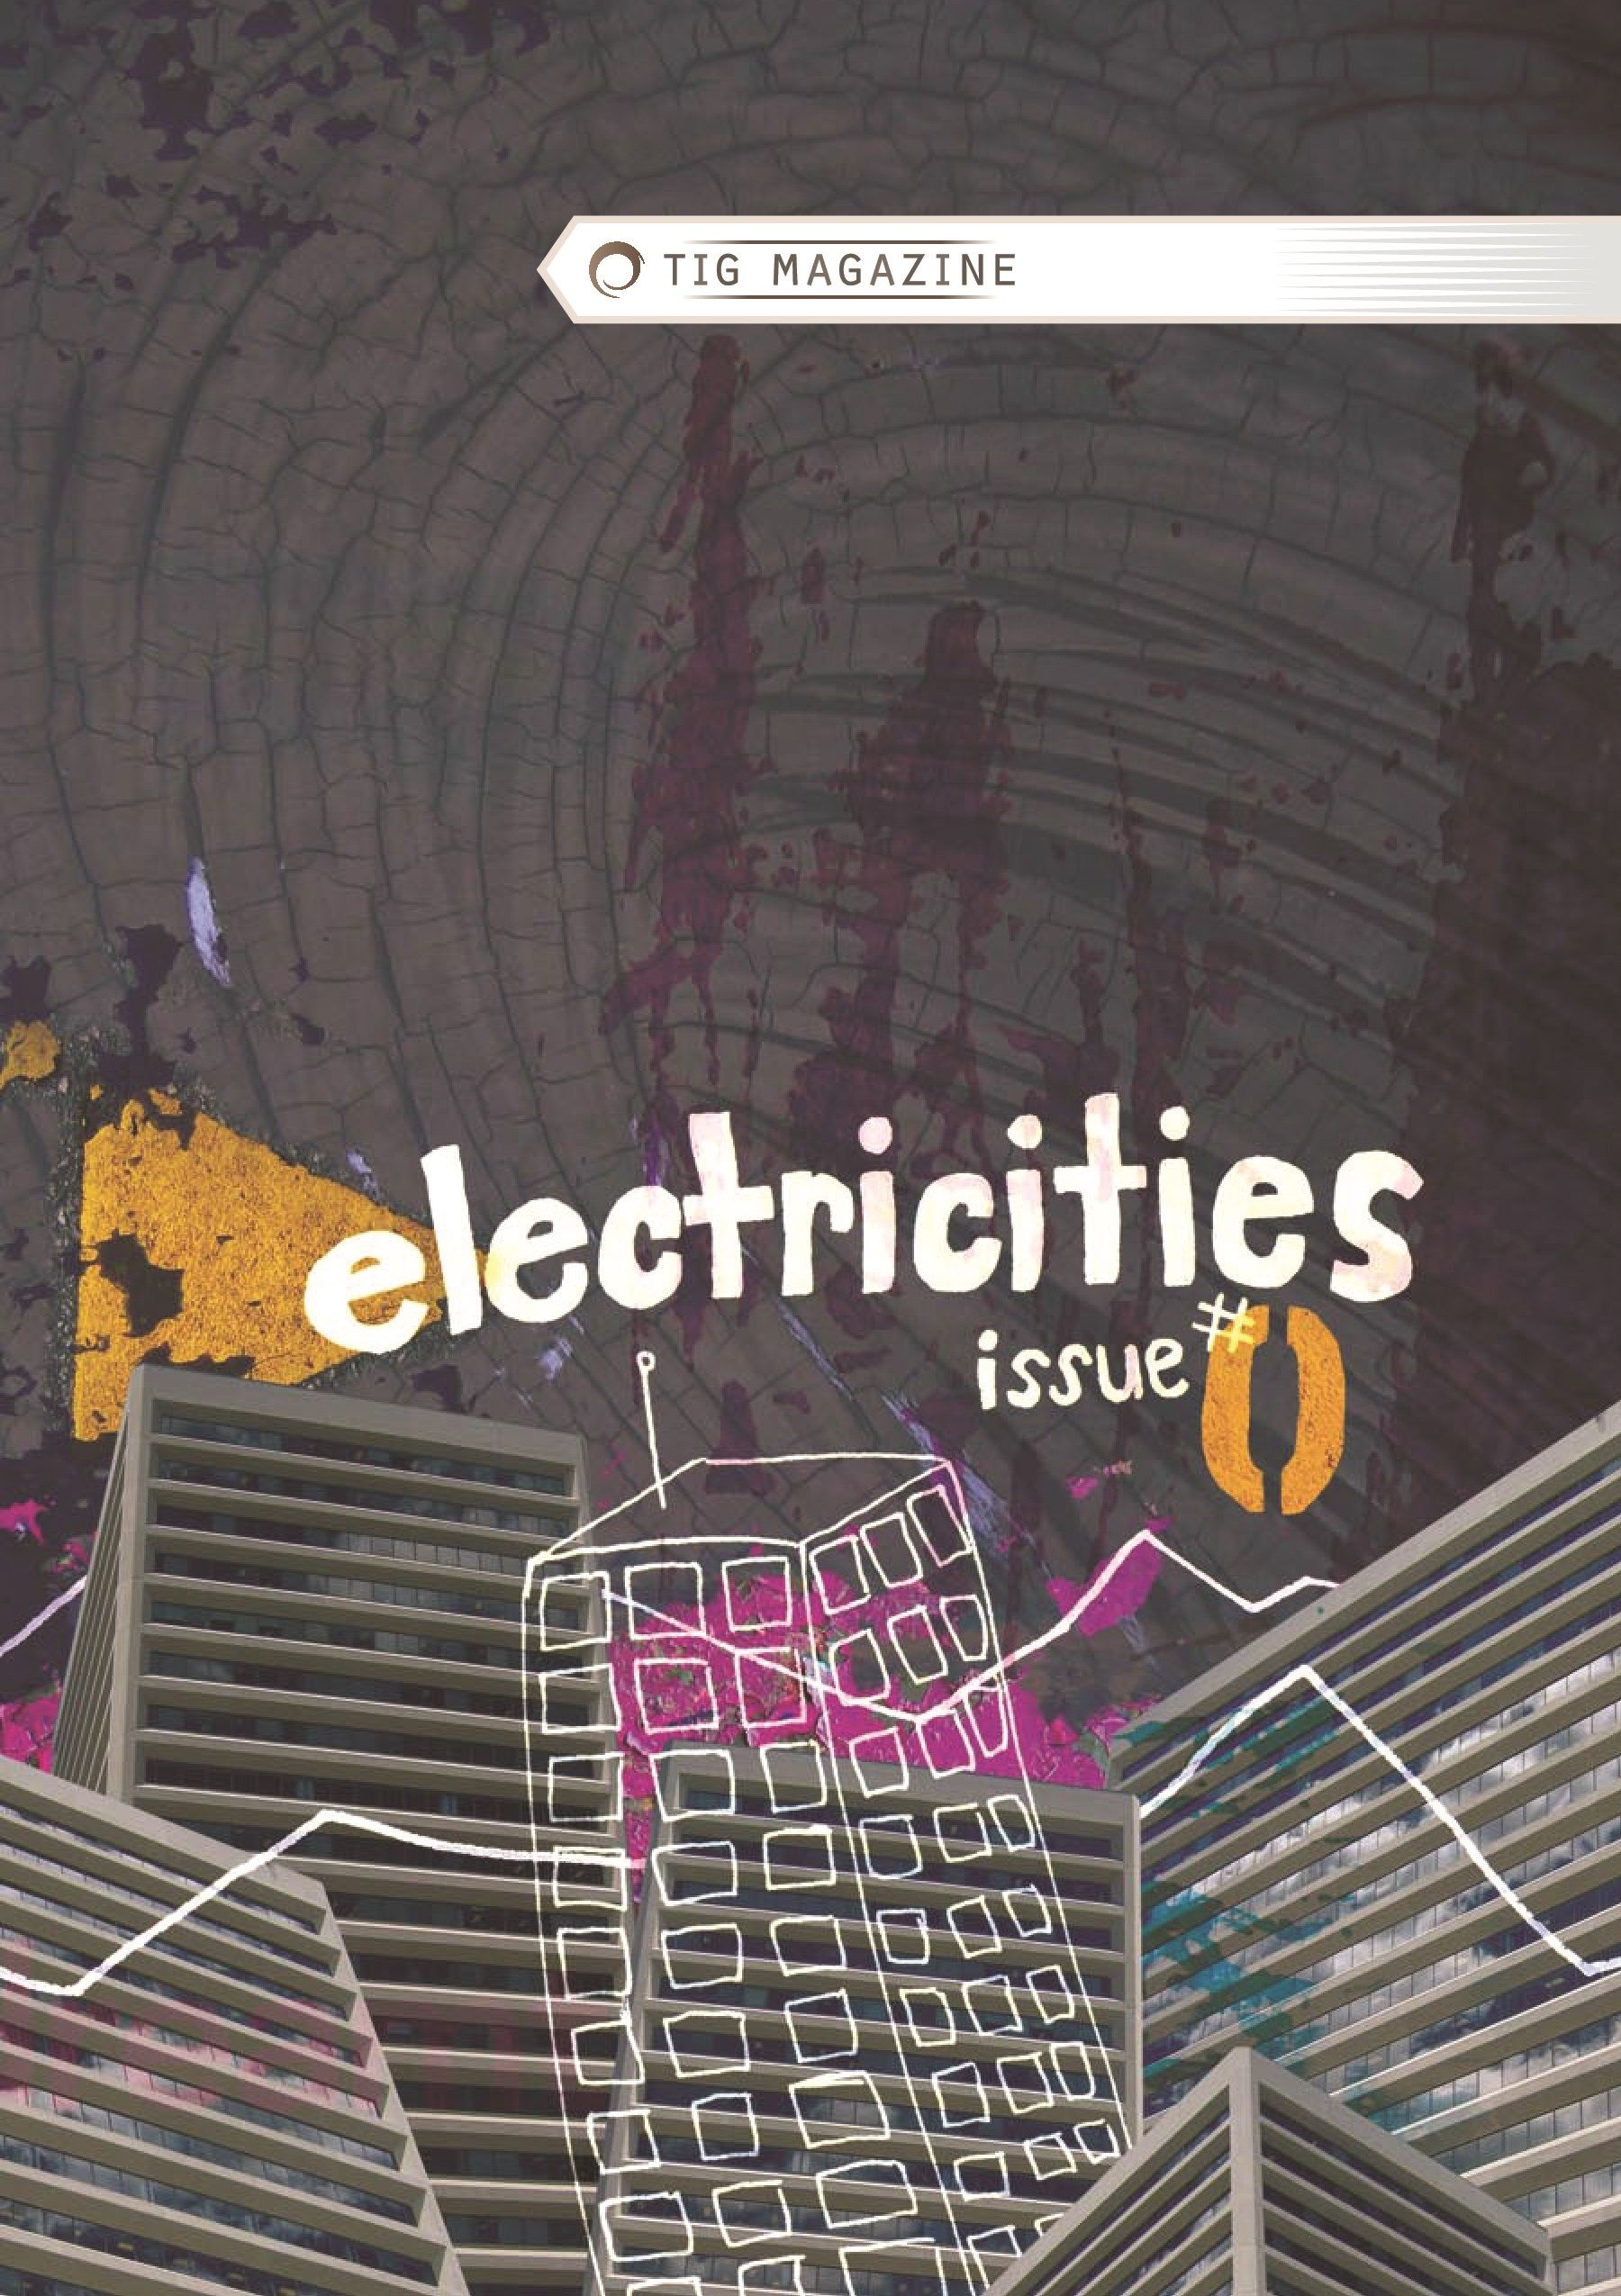 Issue 0: 'electricities'